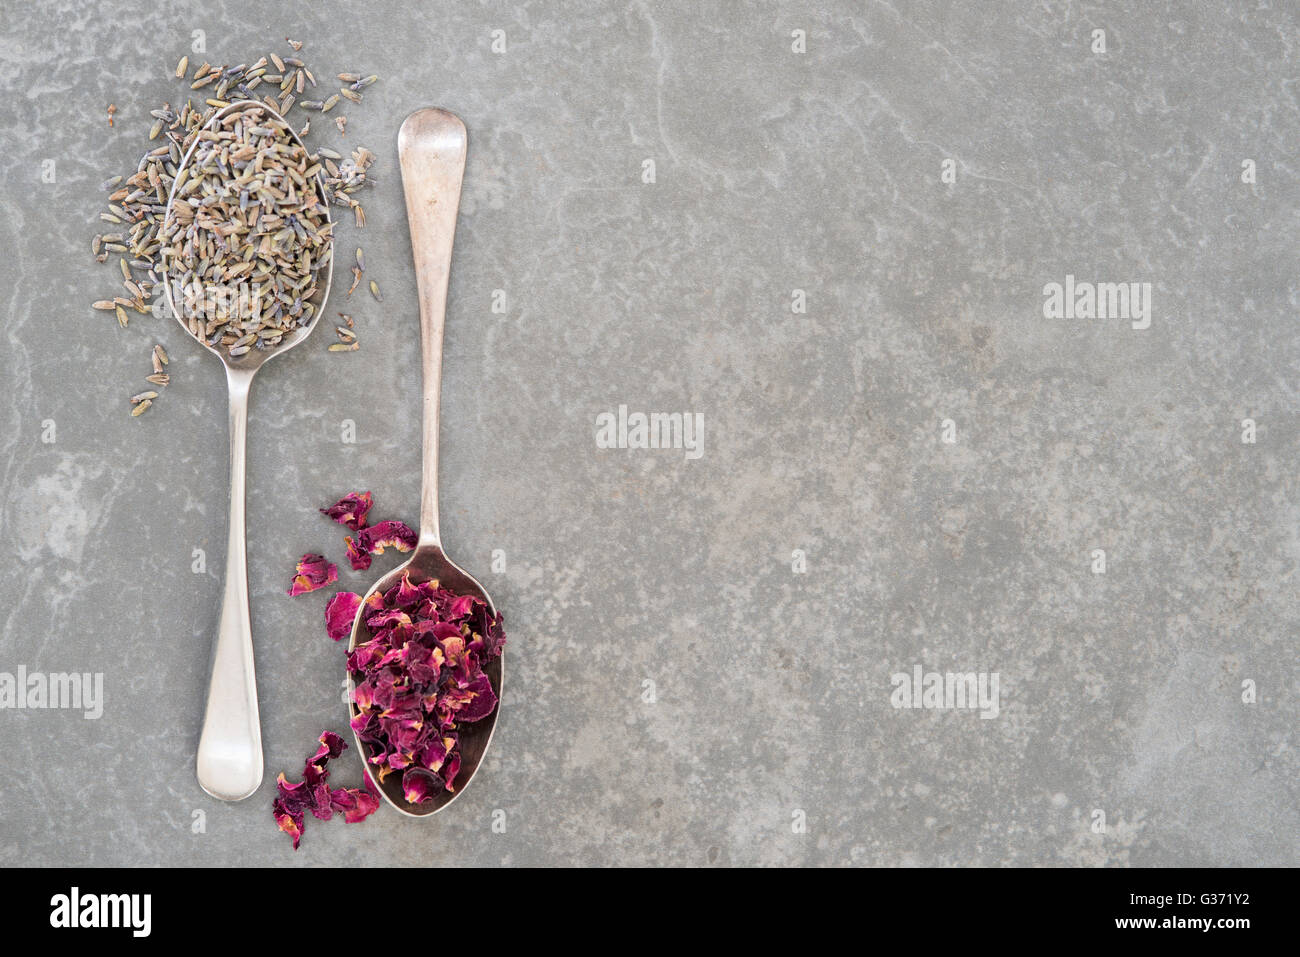 Spoonfuls of dried lavender and rose petals on stone surface with copy space - Stock Image